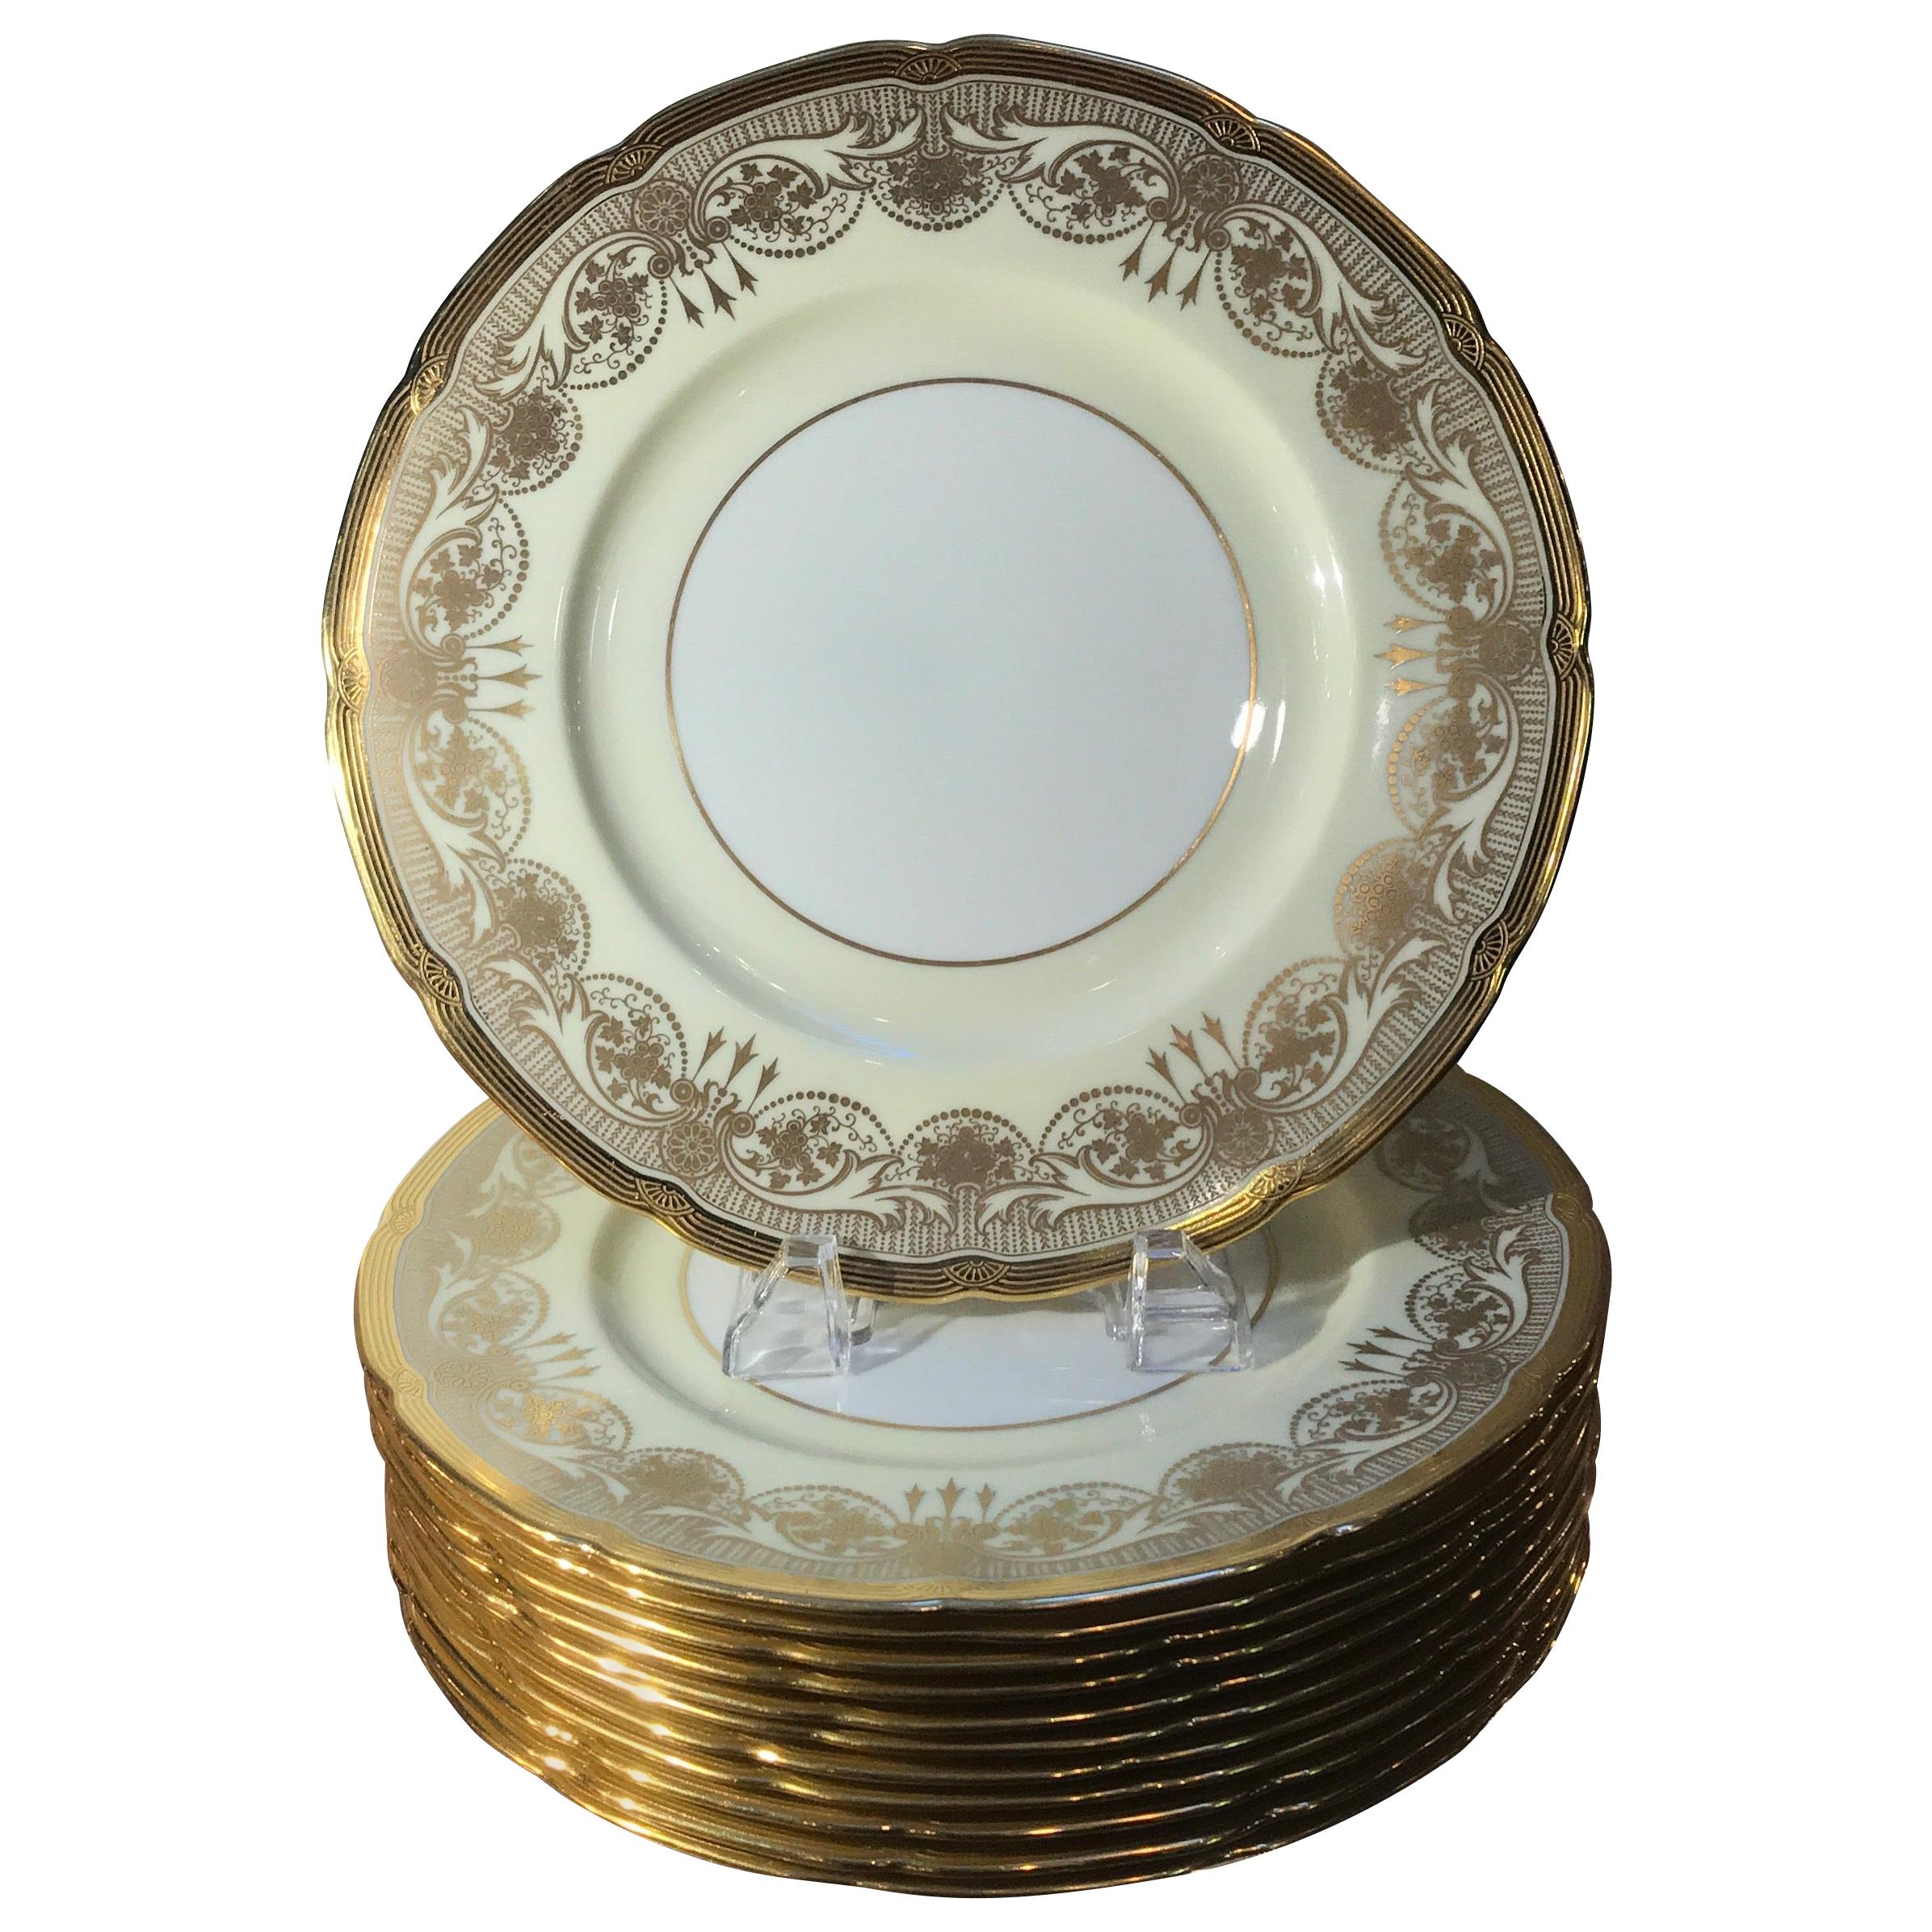 A Set of 12 Gold Encrusted Service Dinner Plates